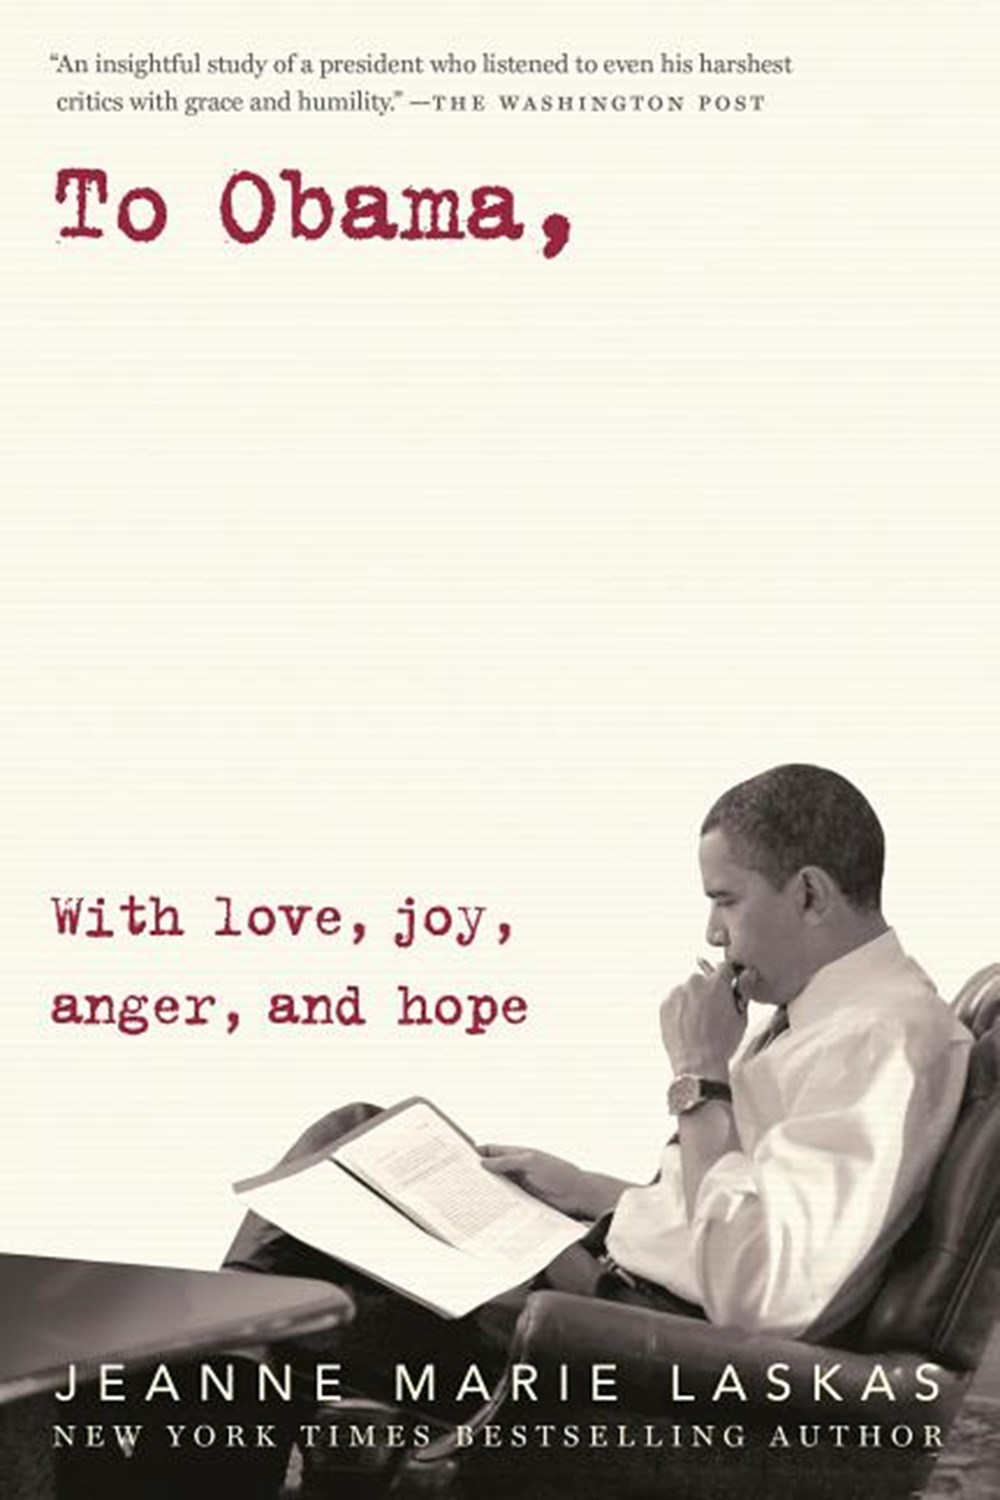 To Obama With Love, Joy, Anger, and Hope